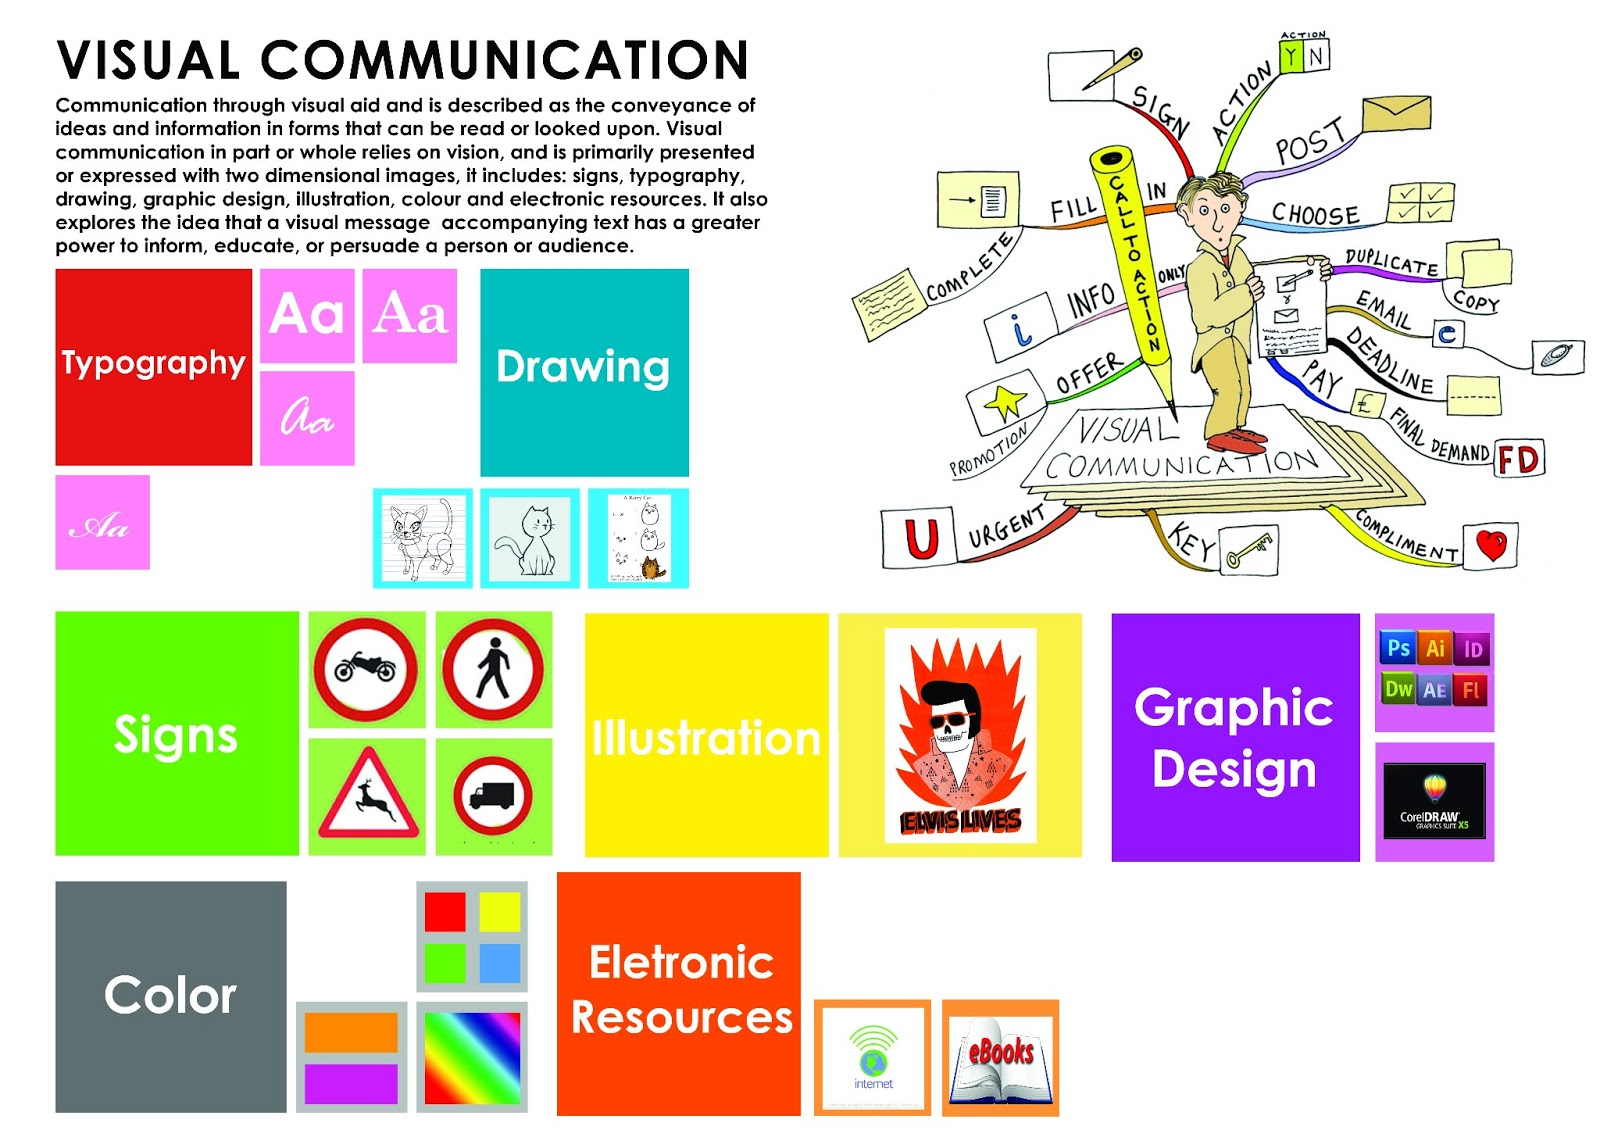 school of culture and communication essay cover sheet 3 name the language domains to be supported by active teaching strategies and learning activities 4 describe and give examples of active teaching strategies and learning activities that are connected to content and language objectives 5 demonstrate examples of active teaching strategies and learning activi-ties in a diverse health education classroom 6.